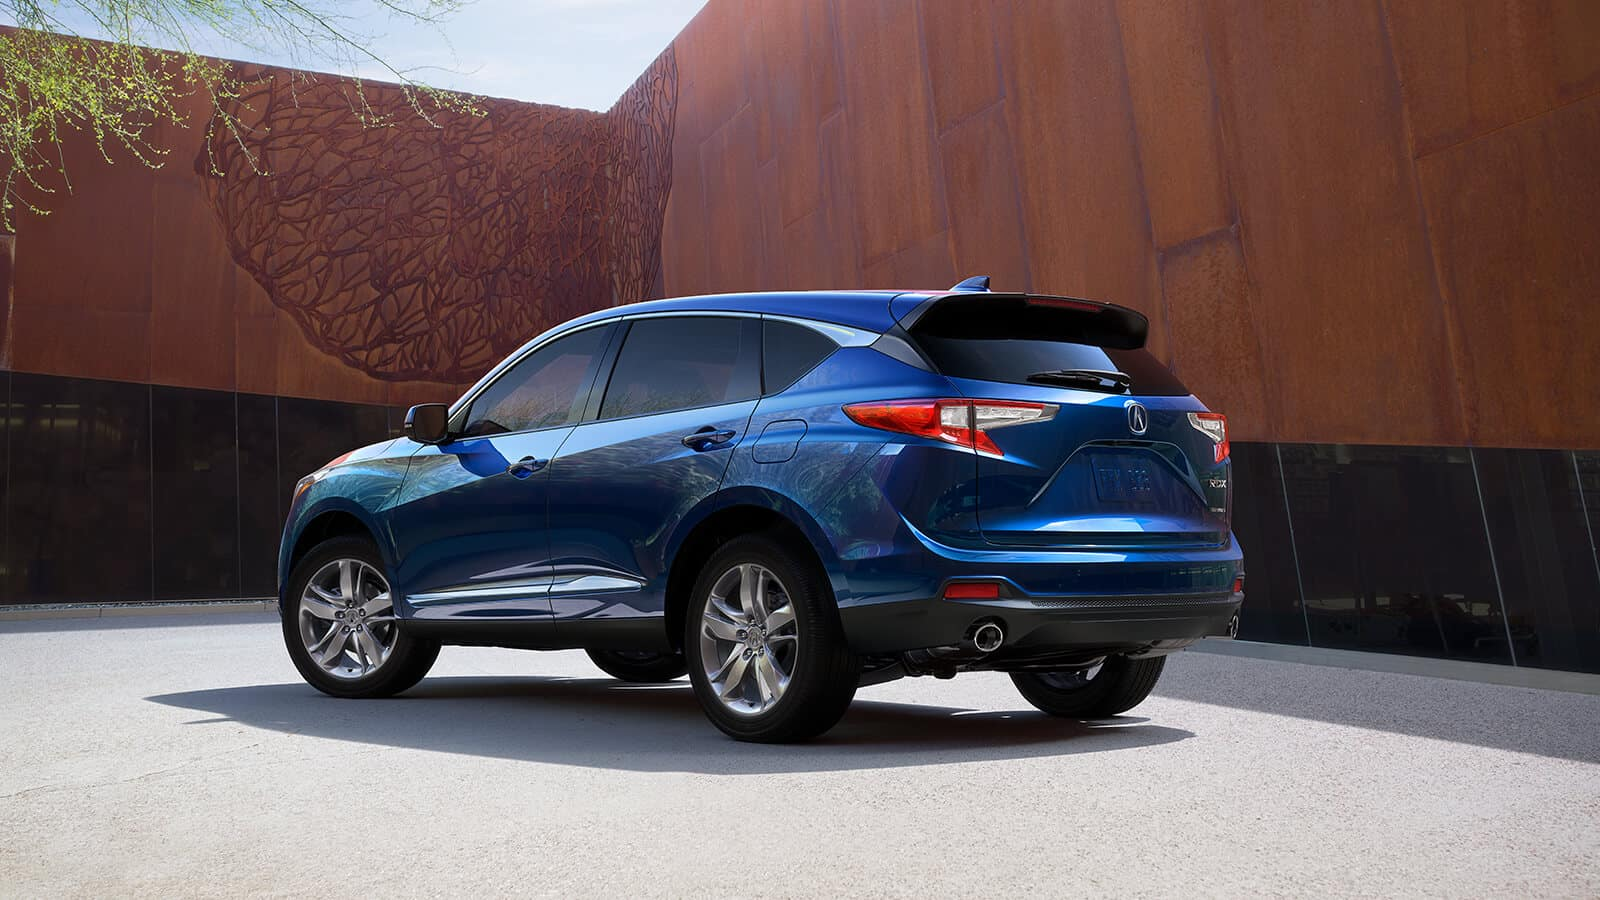 2020 Acura Rdx Luxury Crossover Suv In Colorado Rocky Mountain Acura Dealers